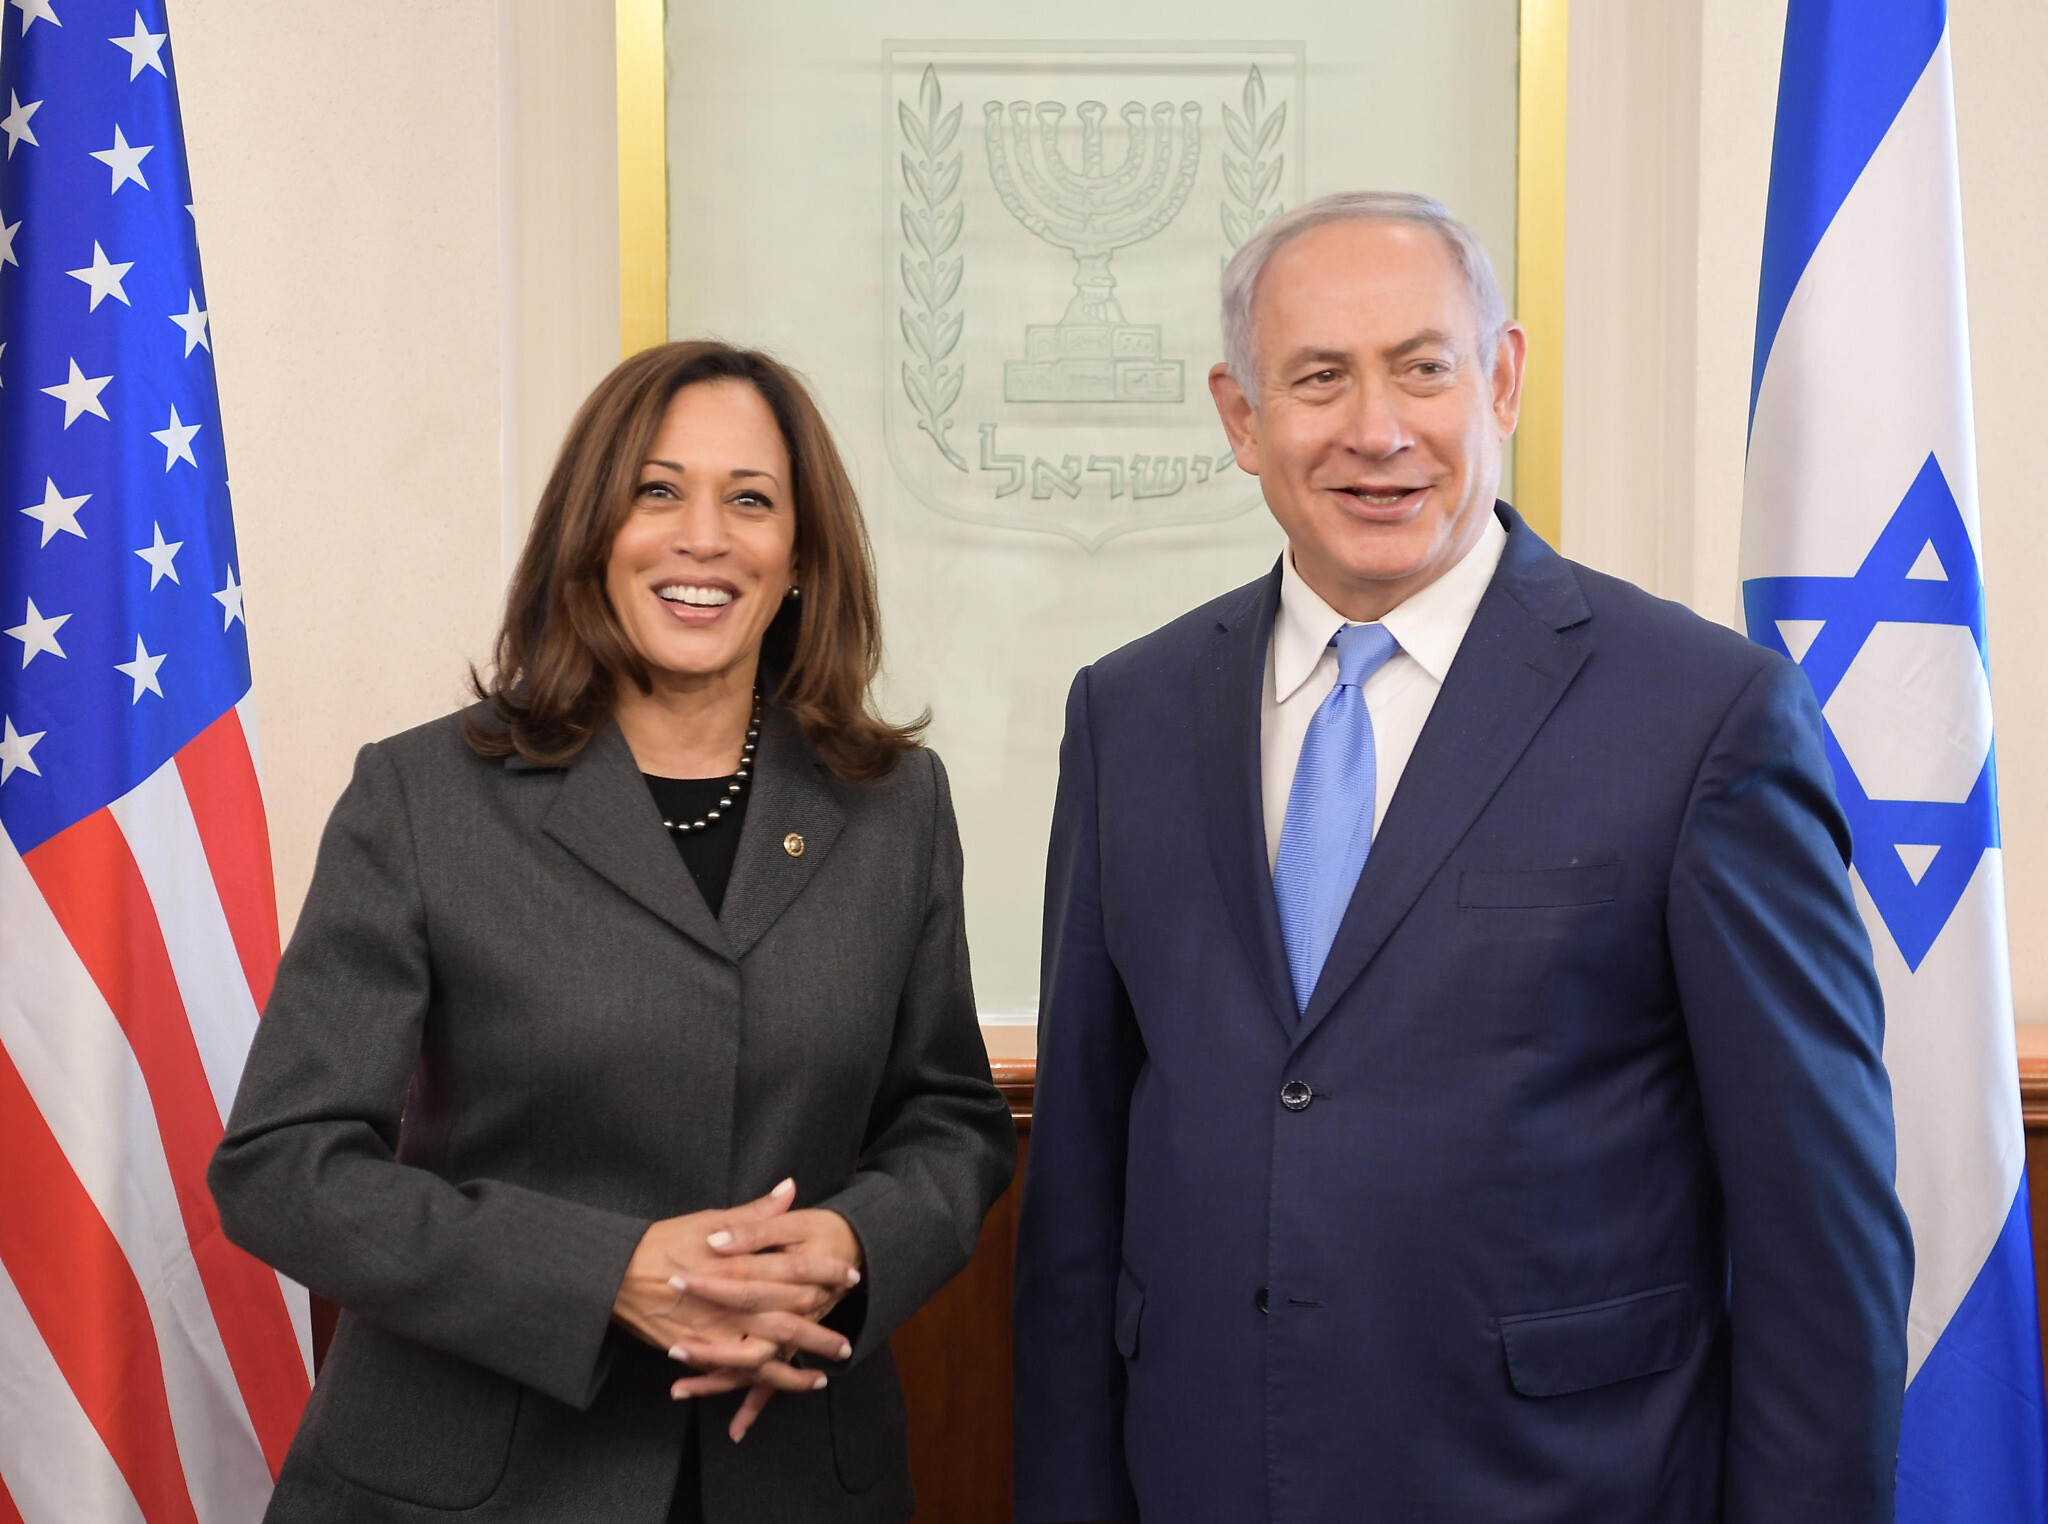 Kamala Harris The Political And Personal Resonance The Australian Jewish News